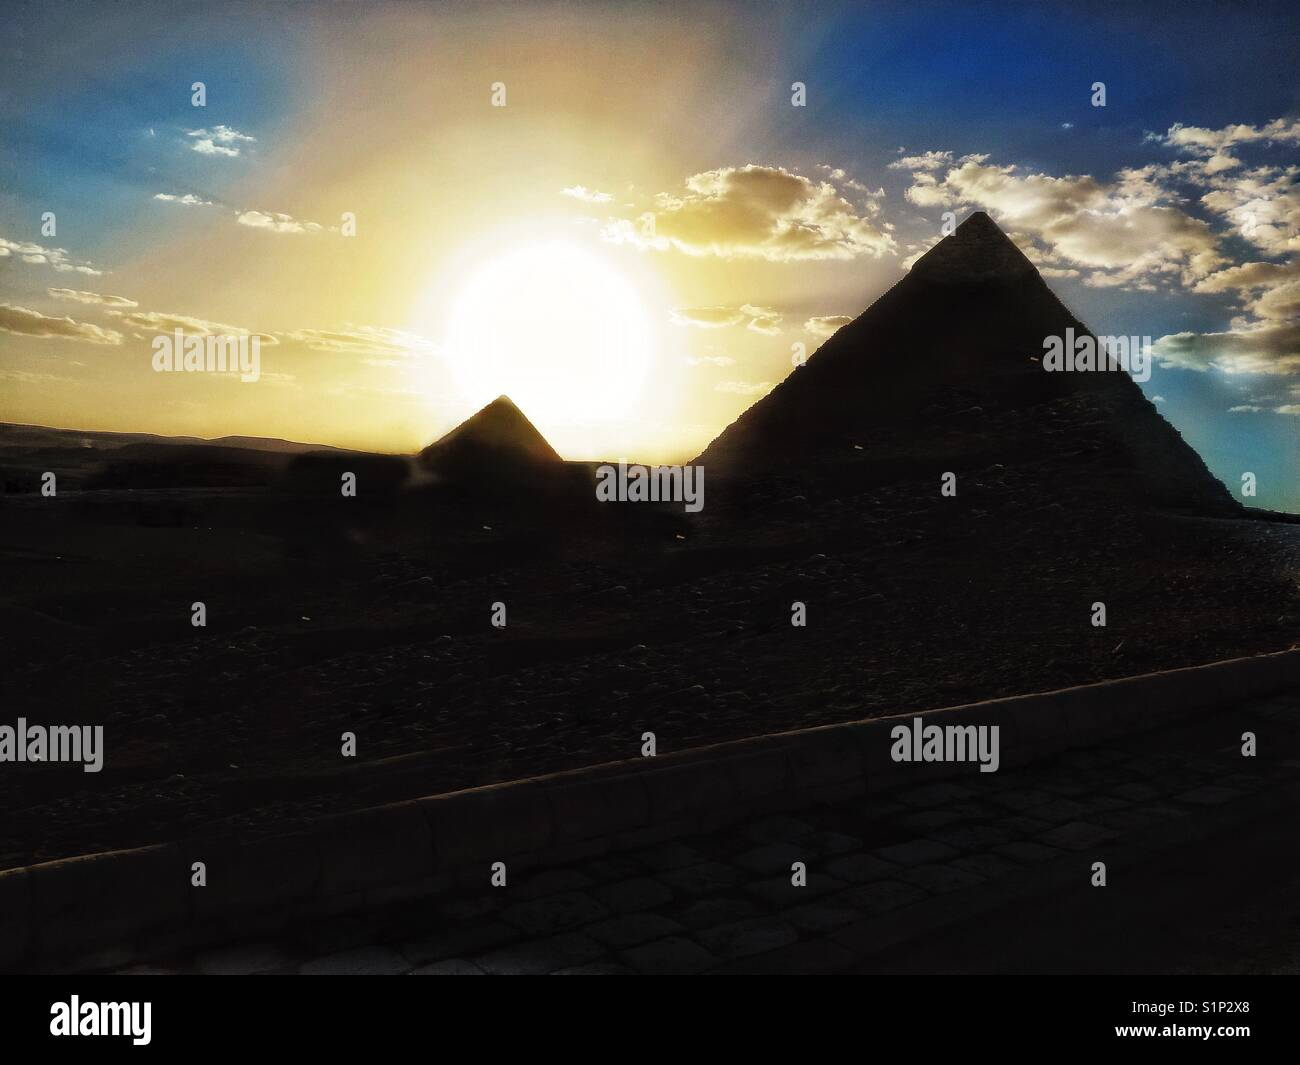 Pyramides, Le Caire, Egypte Photo Stock